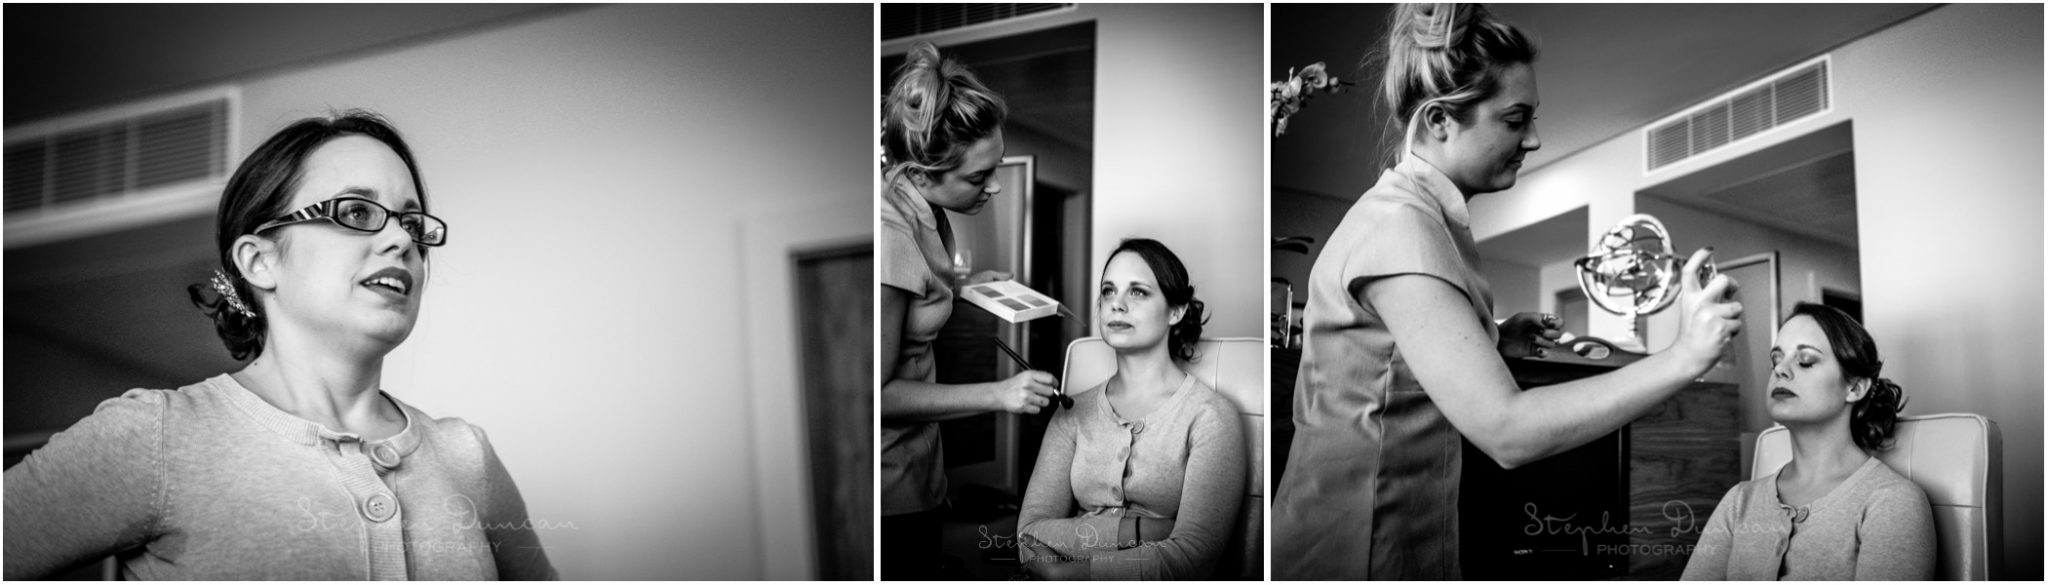 The Aviator wedding photography bride getting ready